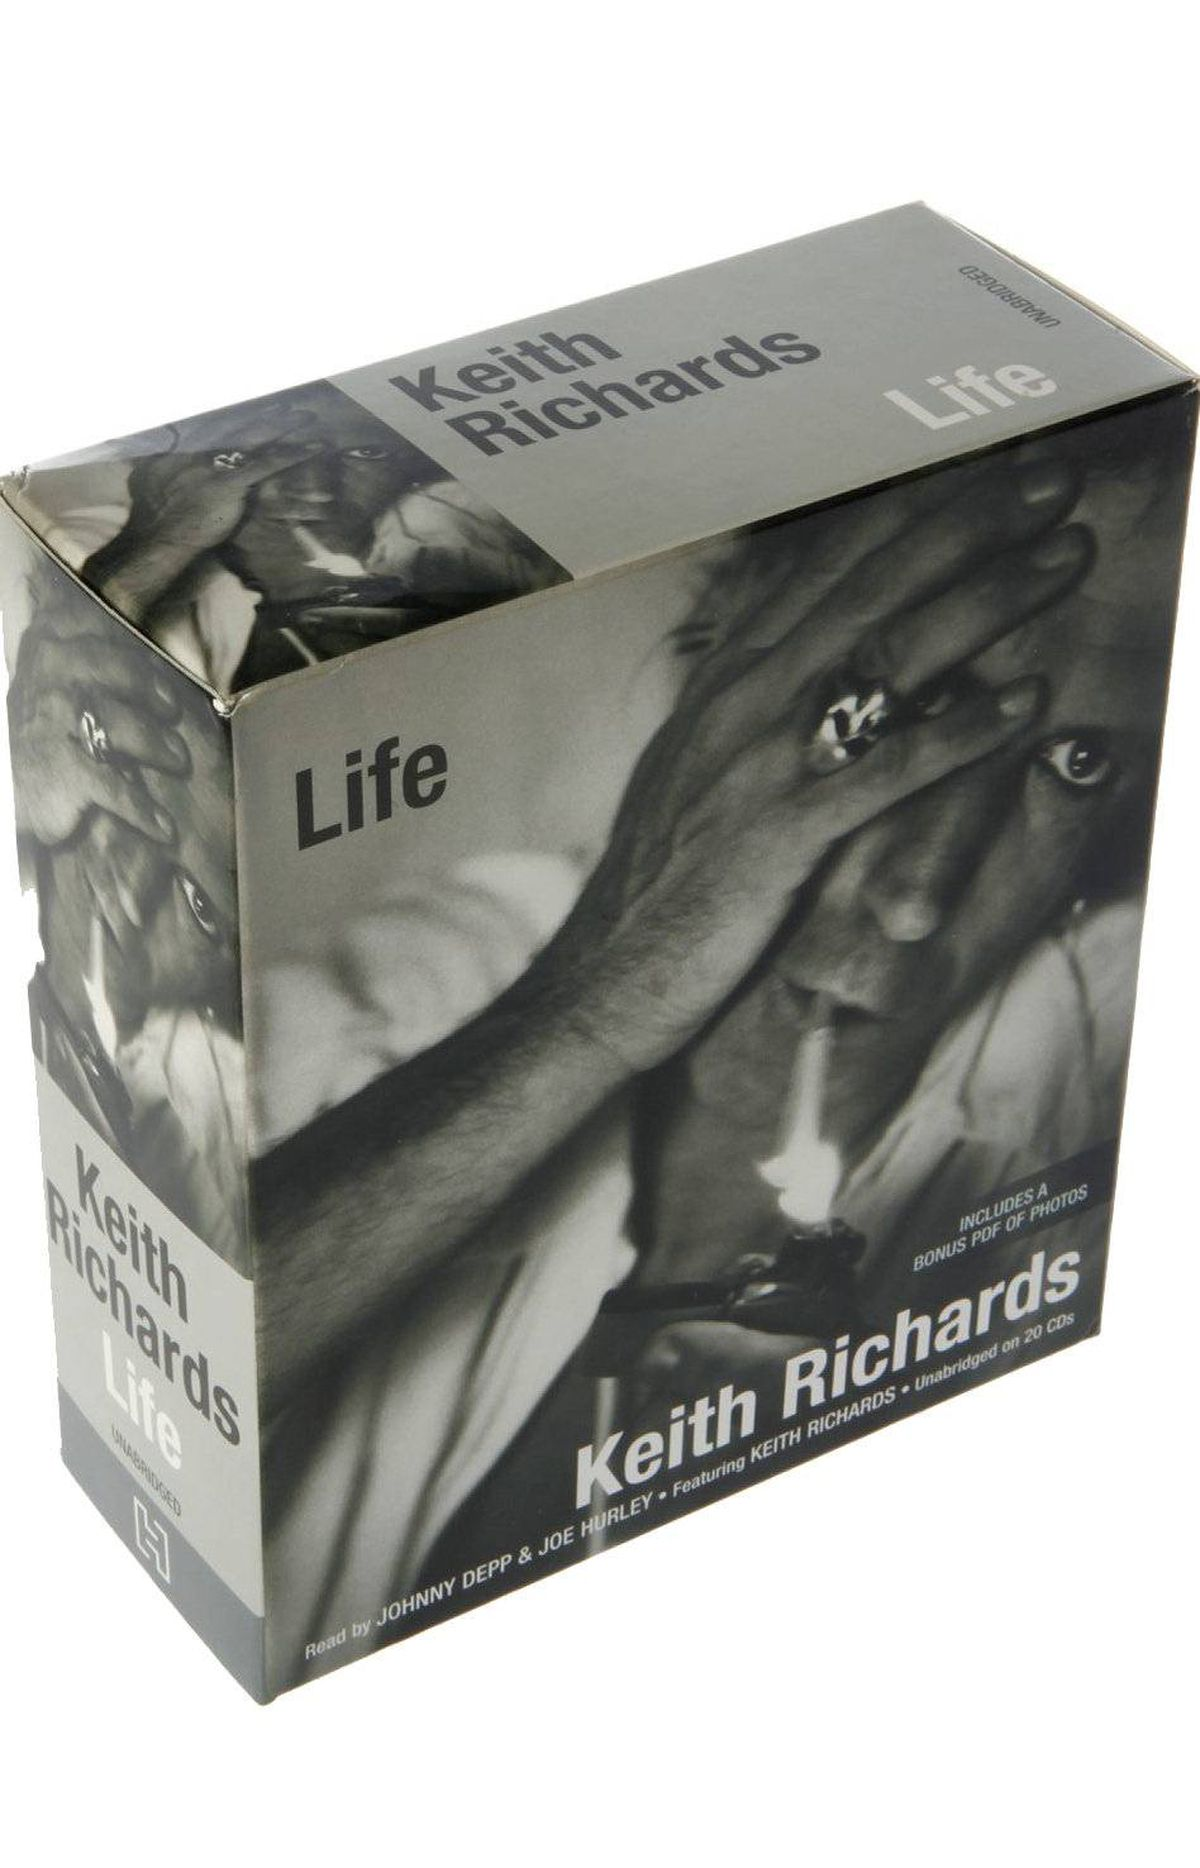 Life by Keith Richards Voted audio book of the year at the awards that honour such productions, this 23-hour narration of guitarist Keith Richard's best-selling biography includes the voices of actor Johnny Depp, London-born actor Joe Hurley and even a bit by the mumble-mouthed madman himself. $26.38 at chapters.indigo.ca; amazon.ca